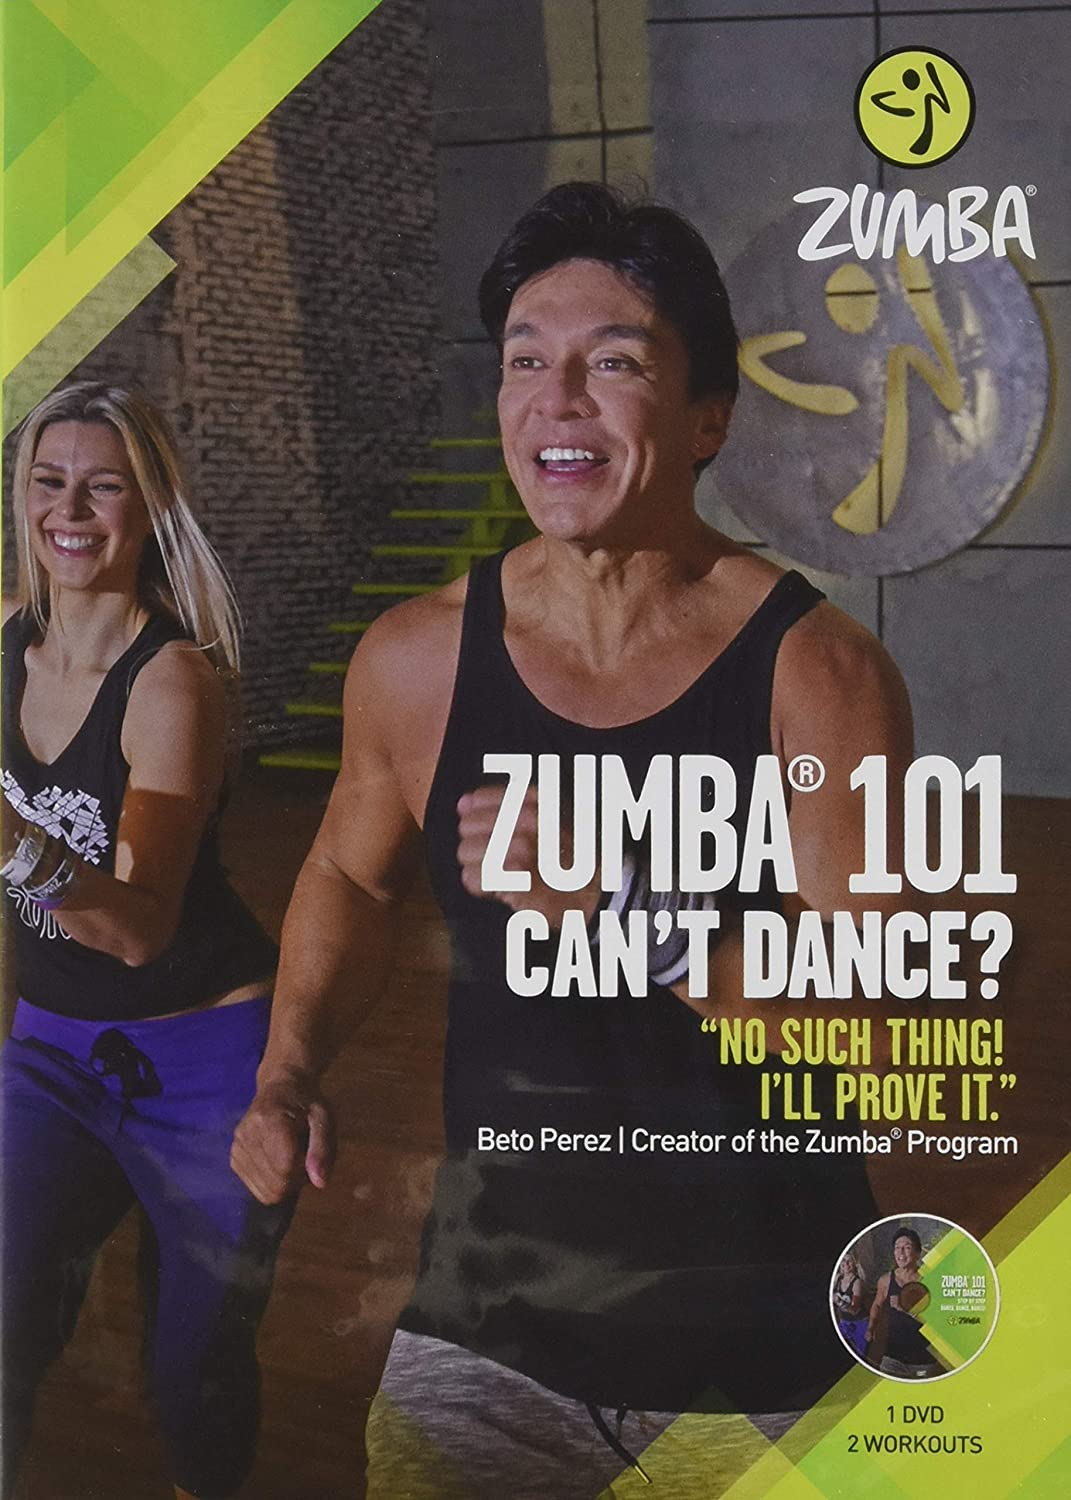 Zumba 101 Workout DVD - Best Zumba dvd for Beginners